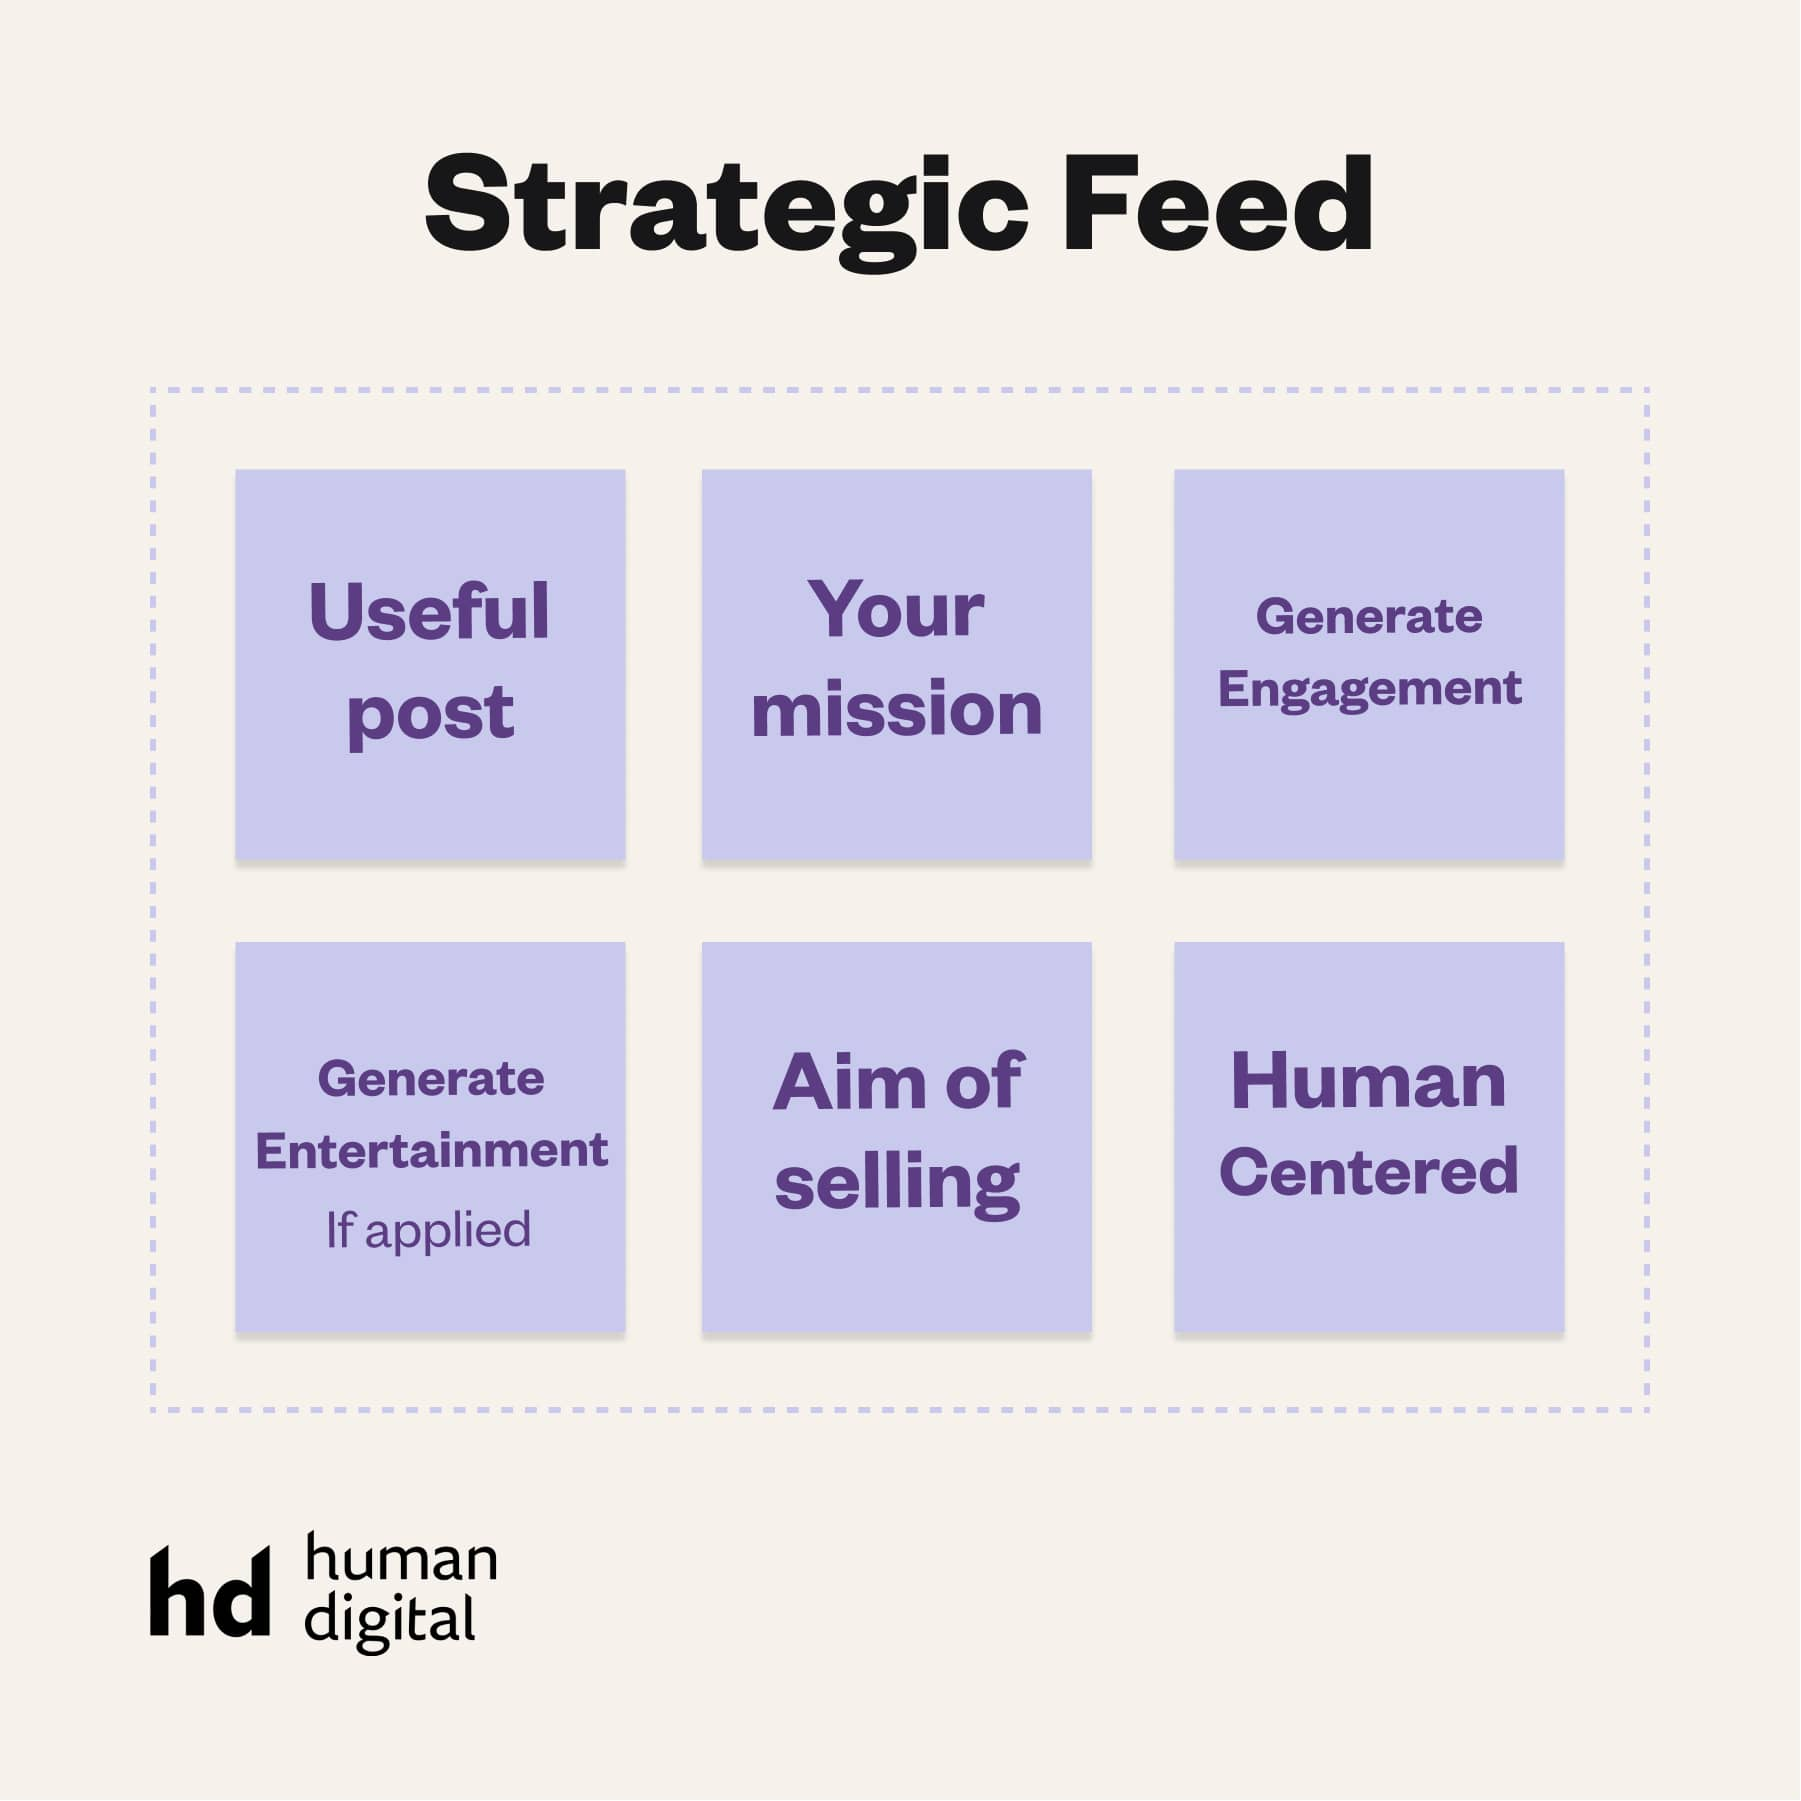 Planning your feed strategically